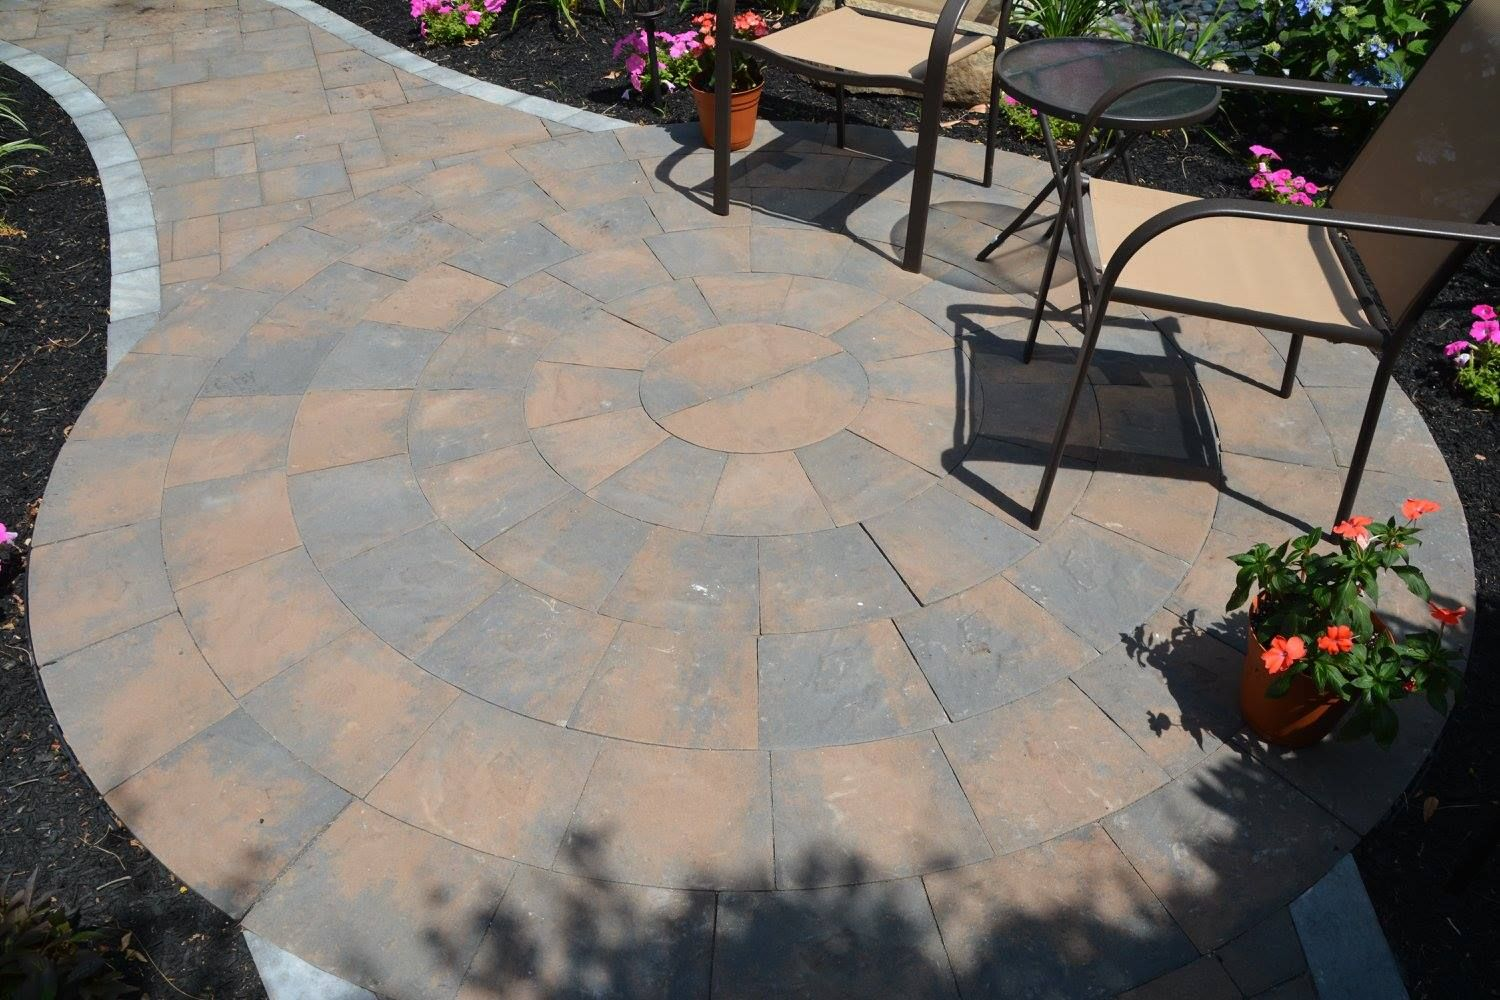 Cambridge pavingstones wall systems color options - Create The Backyard Retreat You Have Been Dreaming About For Years With Cambridge Pavingstones With Armortec Your Options Are Endless